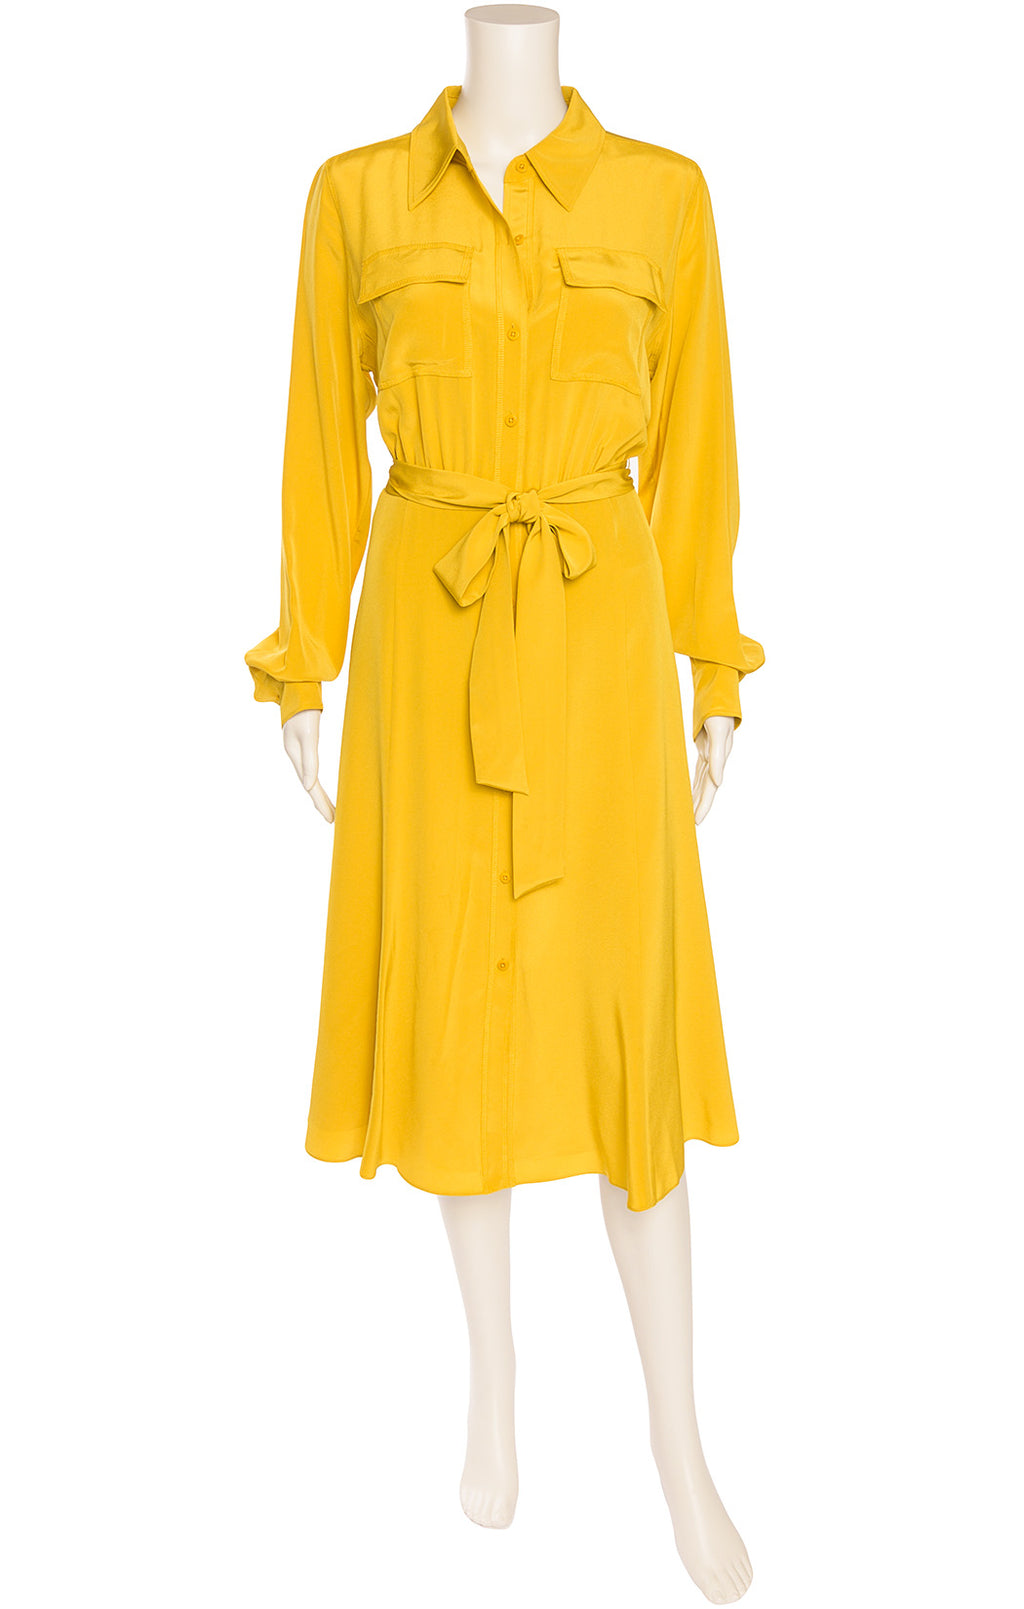 Front view DIANE VON FURSTENBERG with tags Dress Size: Medium